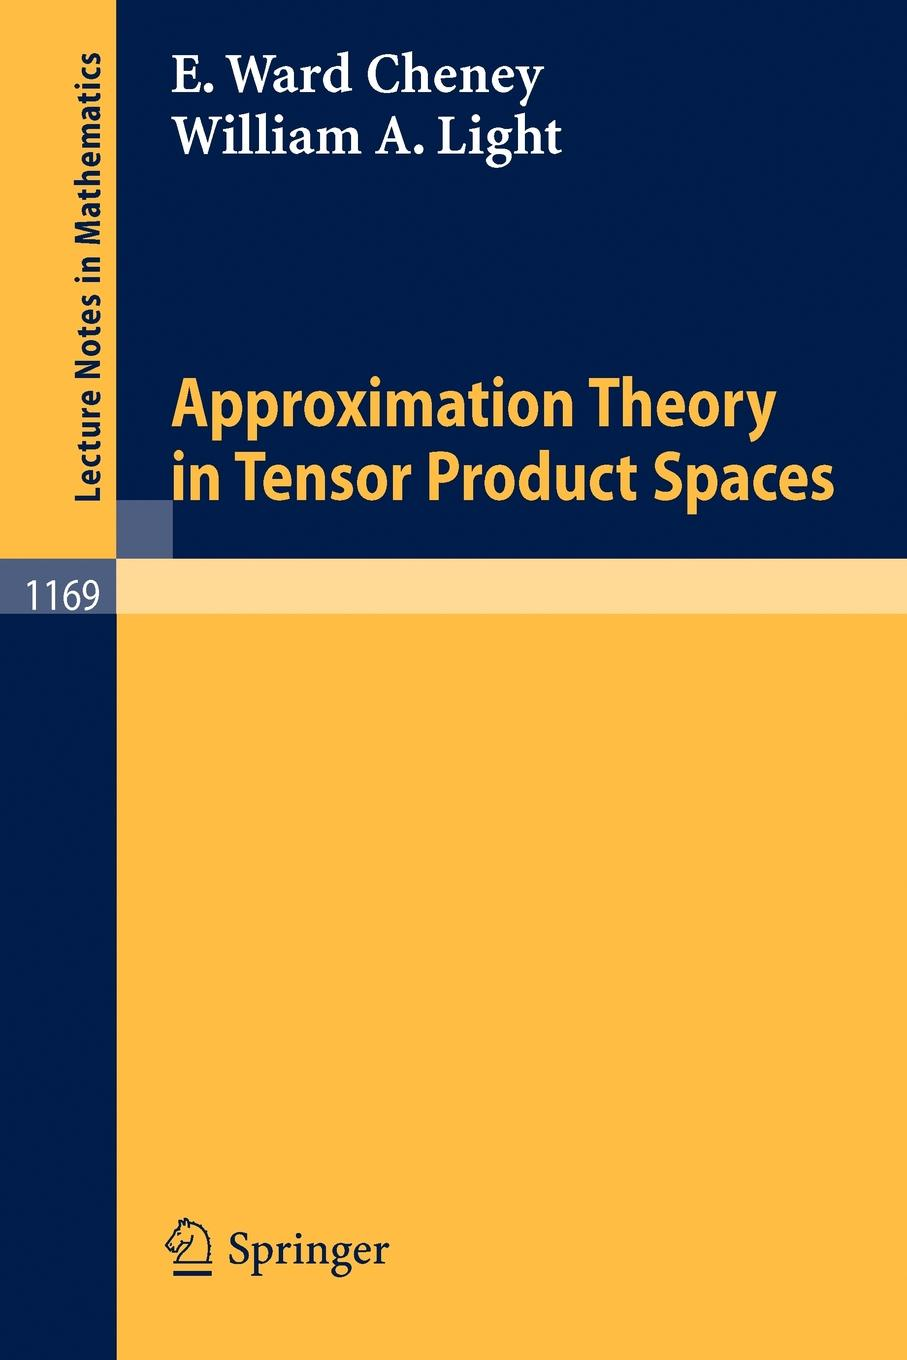 William A. Light, Elliot W. Cheney Approximation Theory in Tensor Product Spaces louis w fry liminal spaces and call for praxis ing